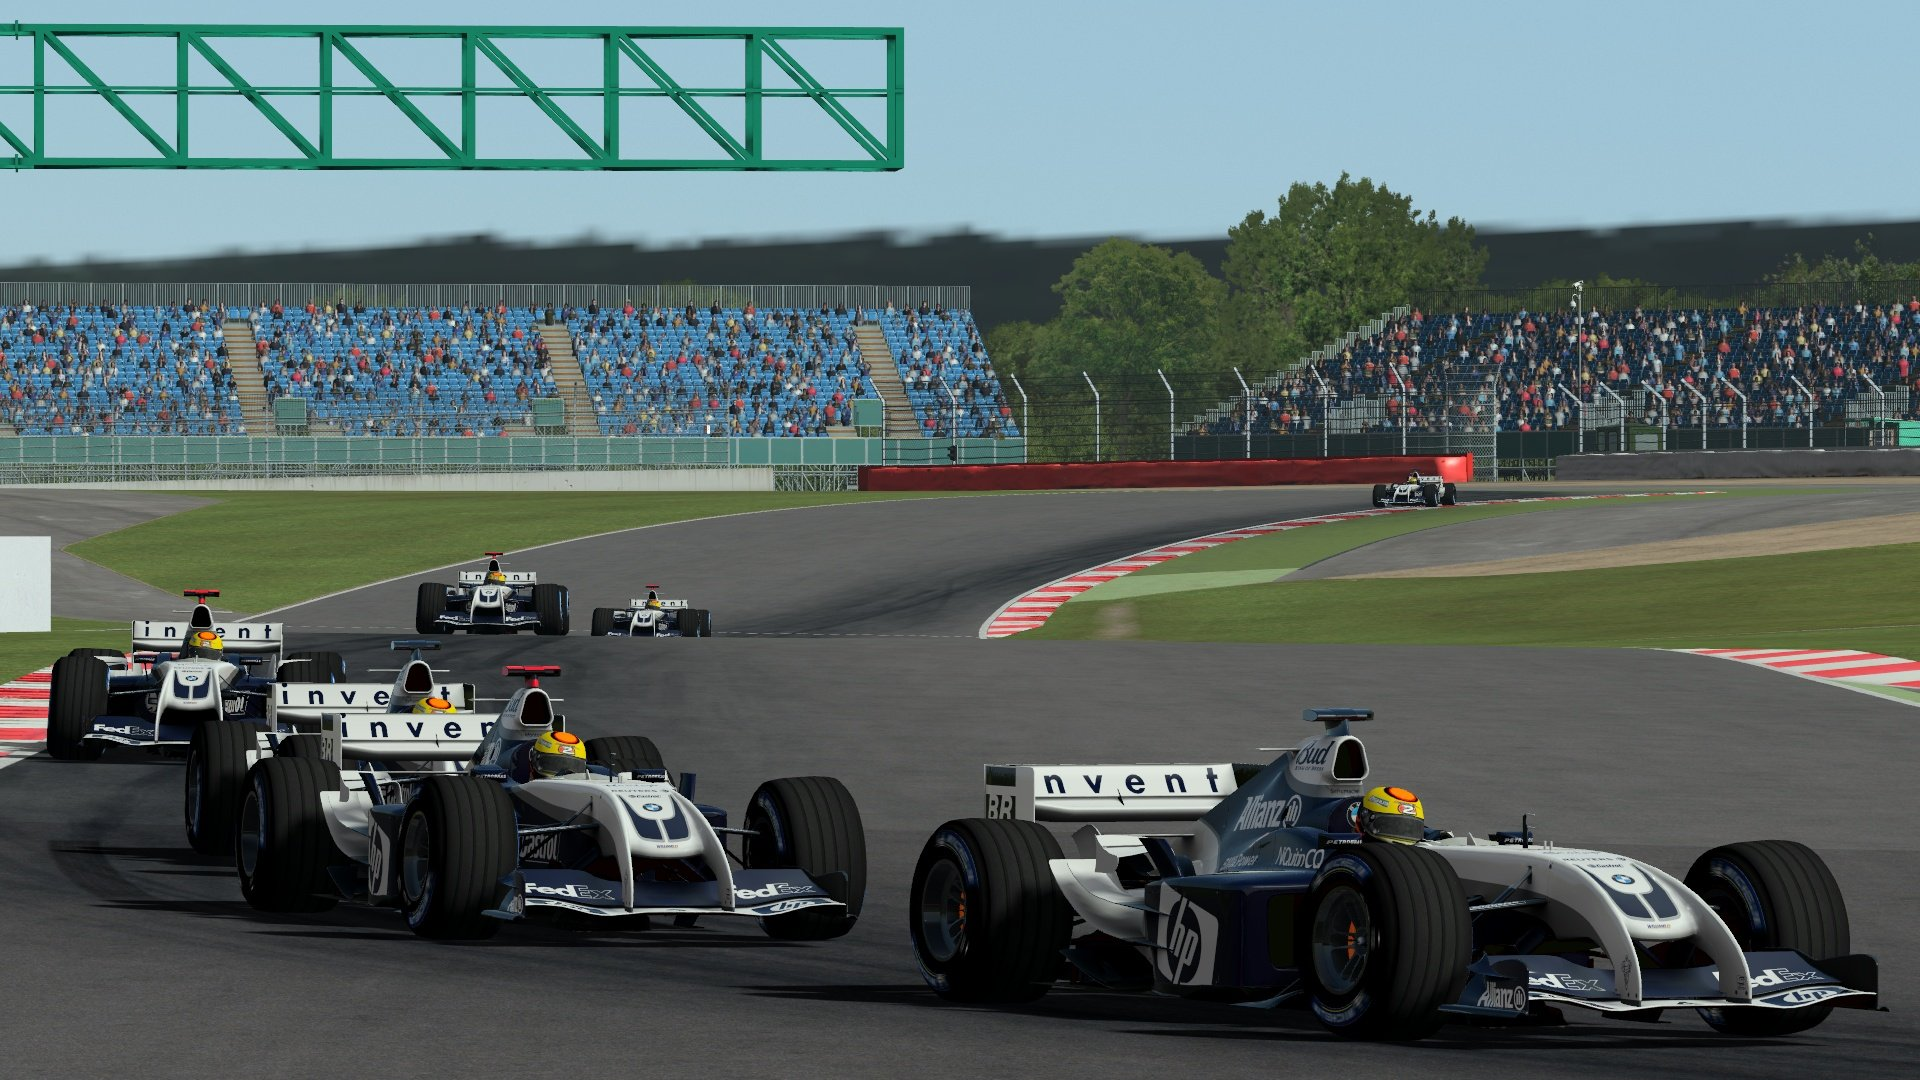 From Karts to F1 - New Content Coming to rFactor 2 - Inside Sim Racing